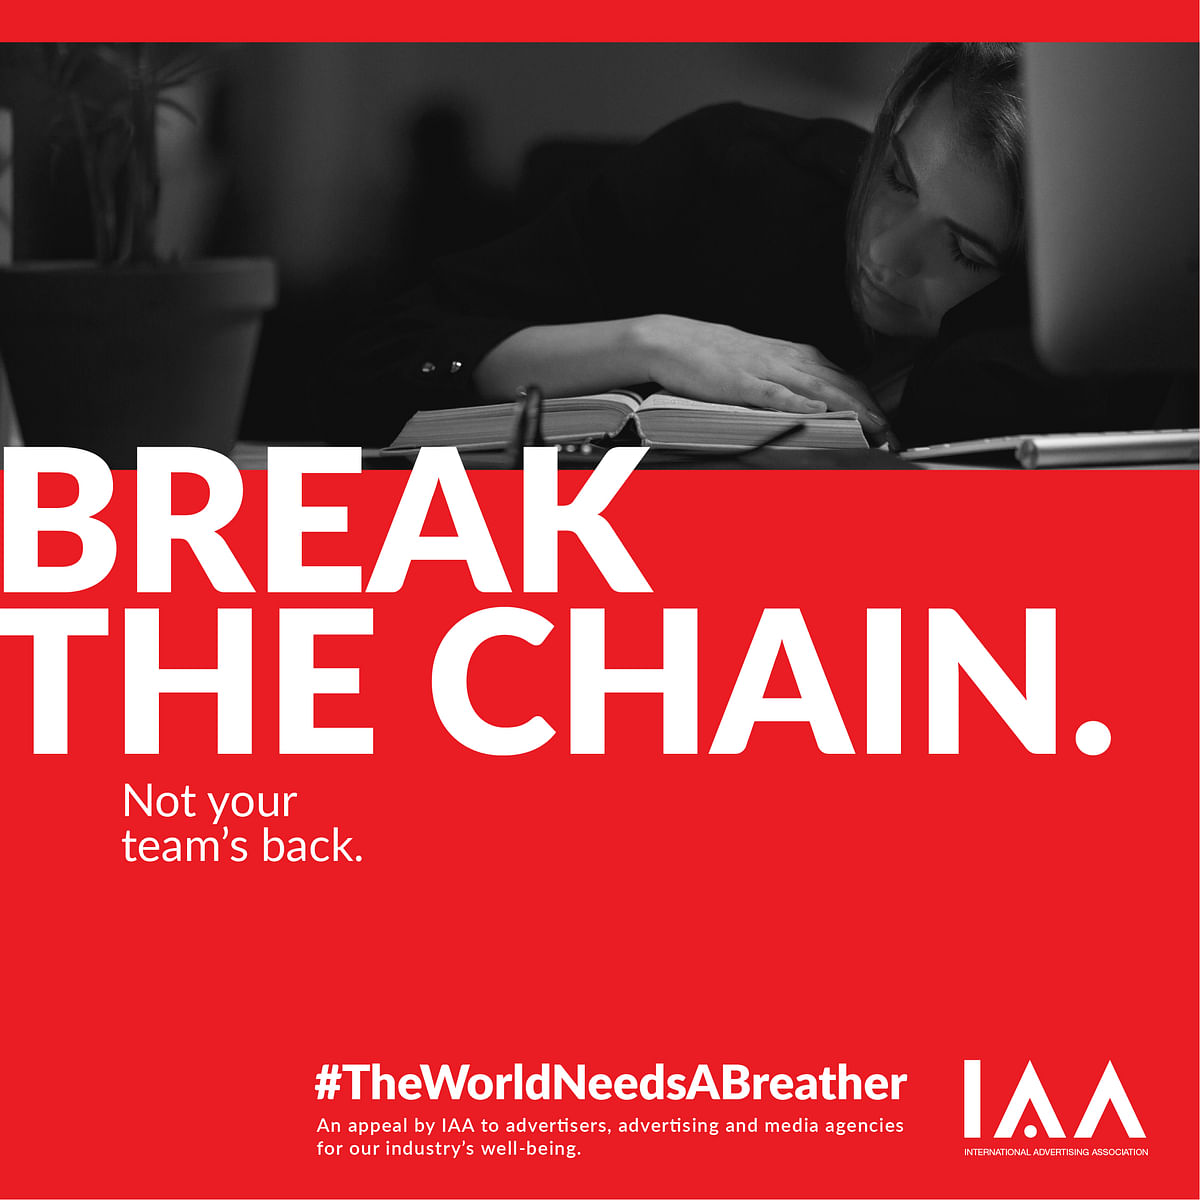 The IAA urges advertisers and agencies to take a breather